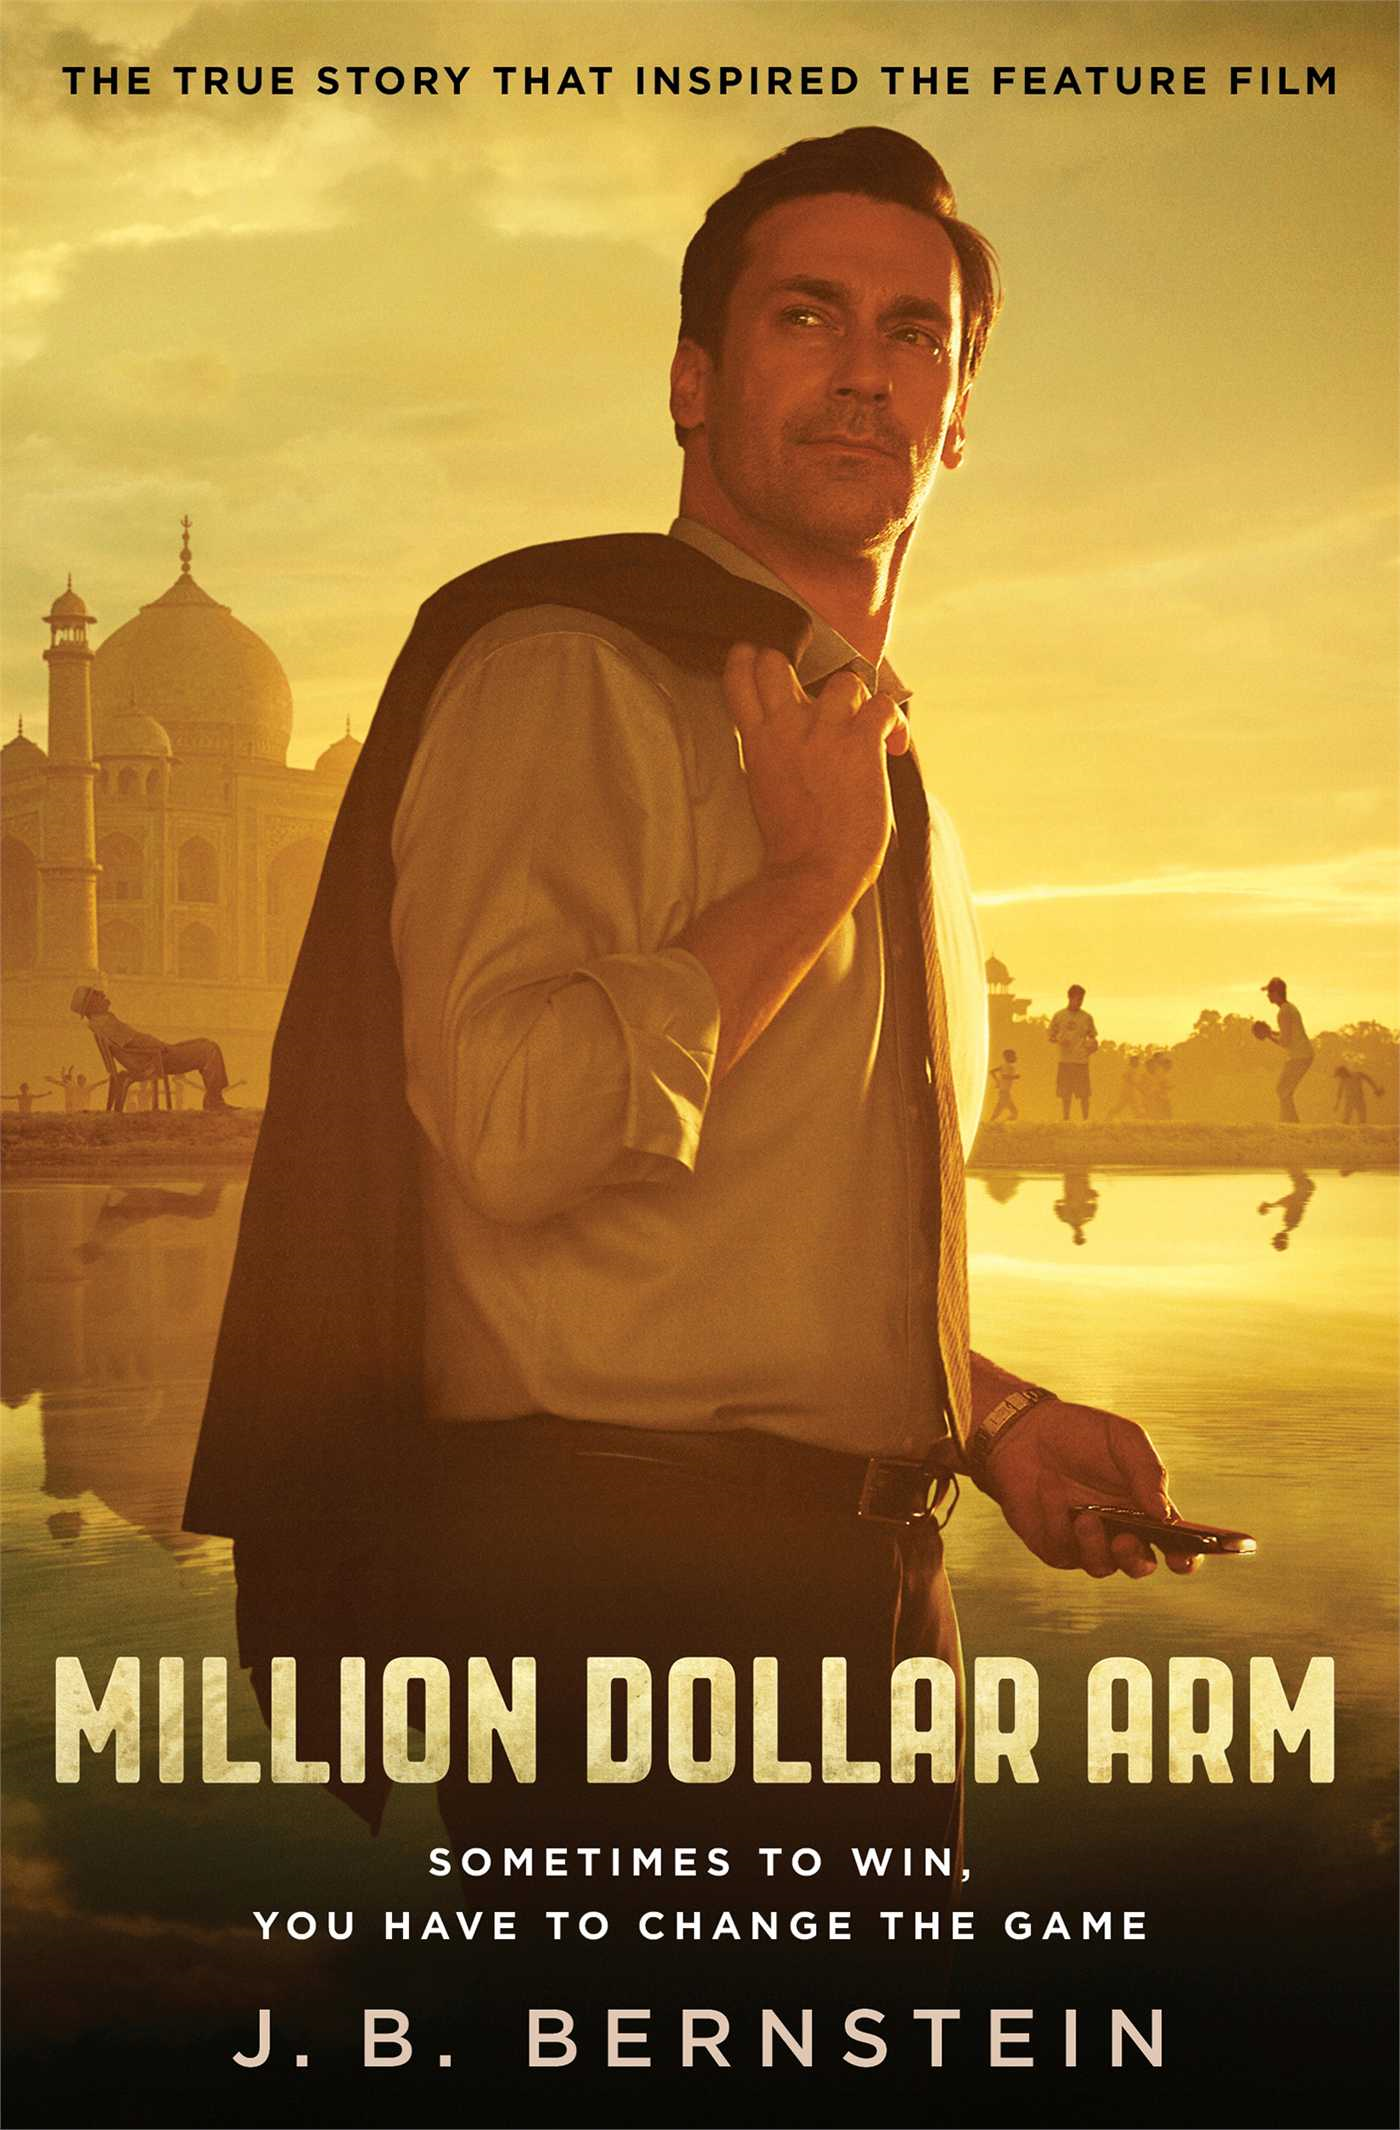 Million Dollar Arm Sometimes to Win,  You Have to Change the Game